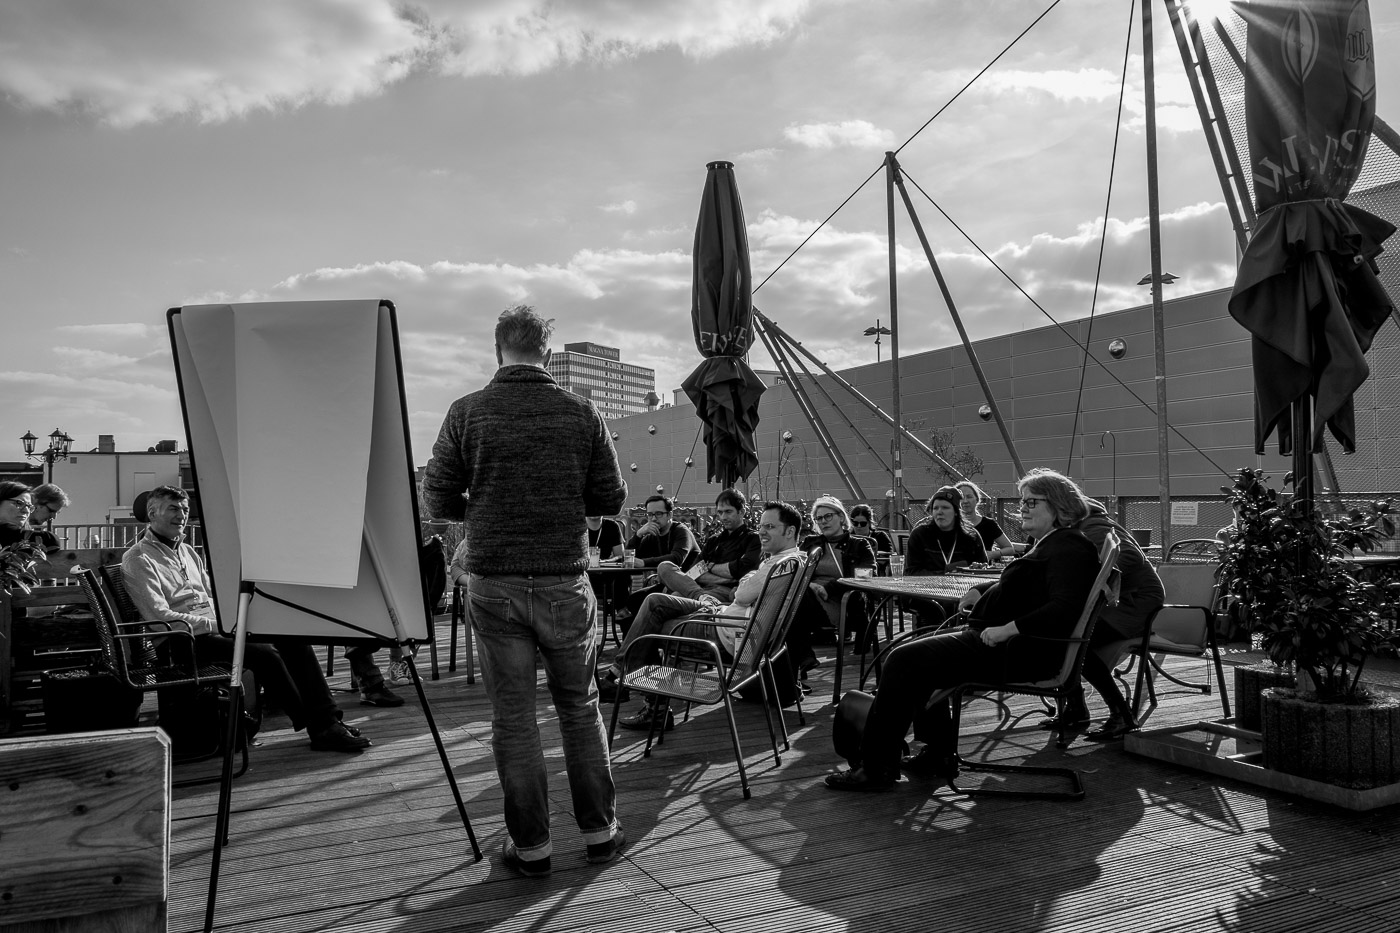 Attendees during the Berthold's session on the roof terrace